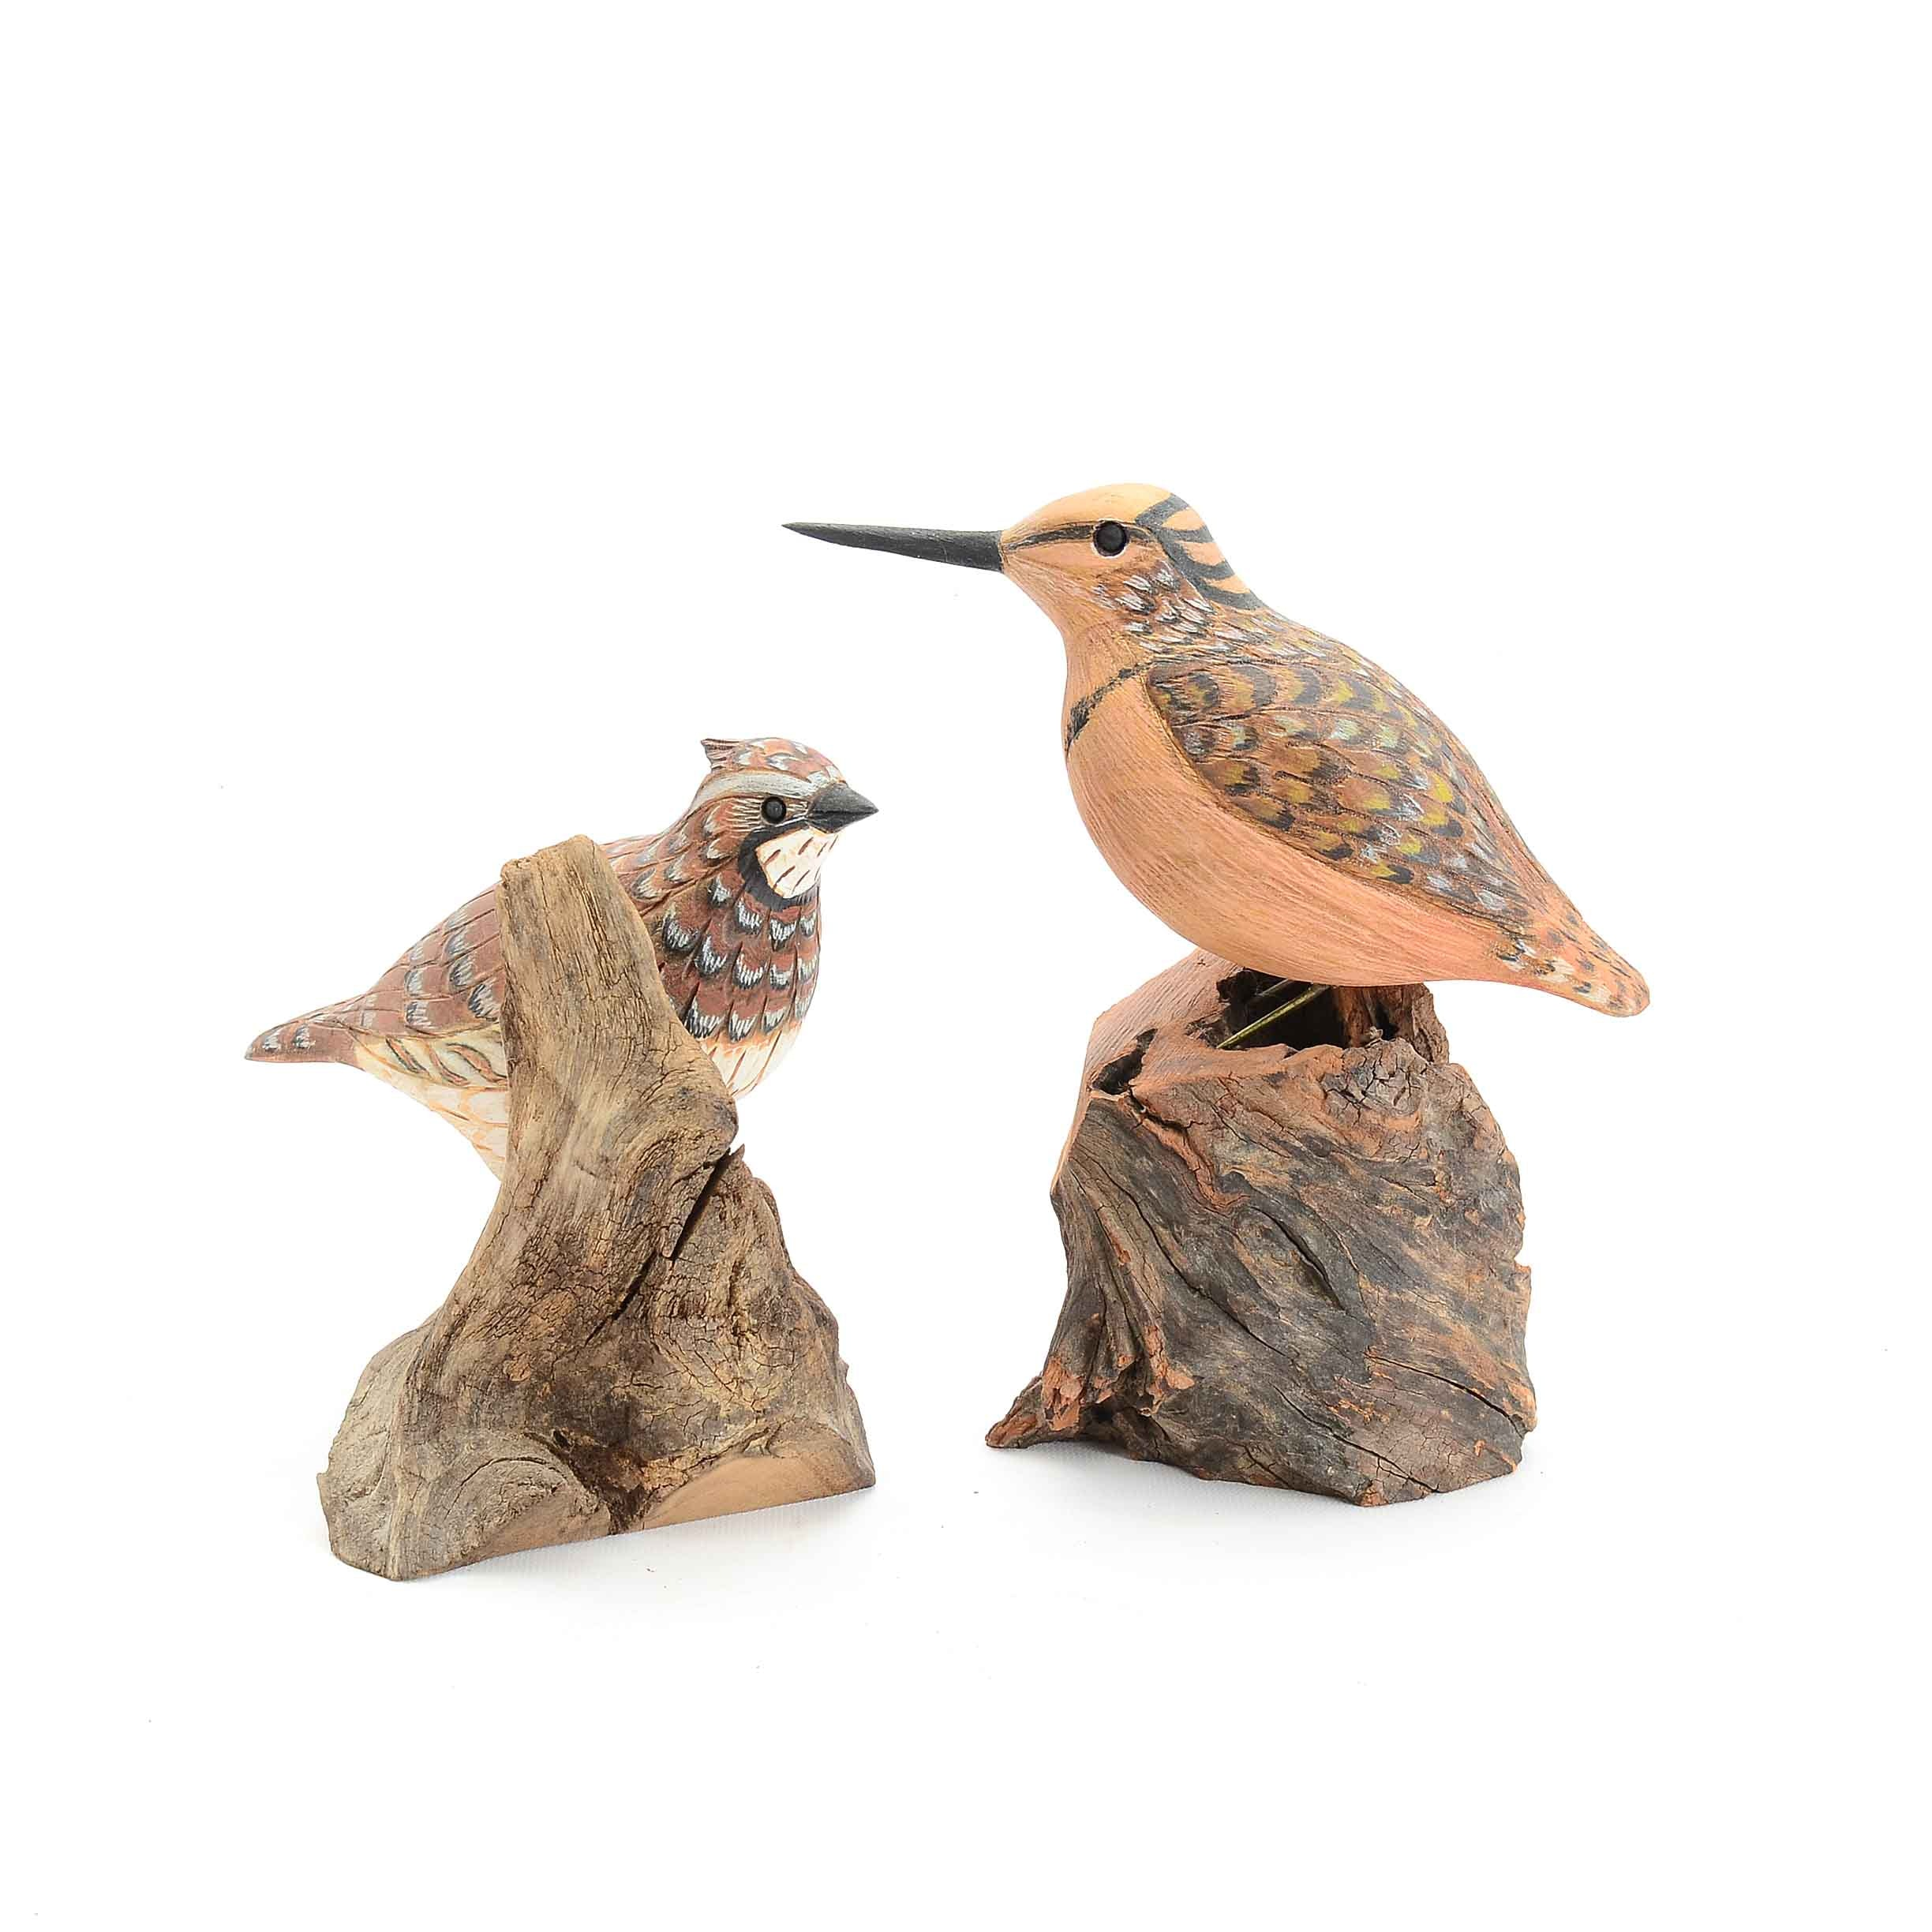 Pair of Carved Wooden Bird Sculptures by Eugene Ownby